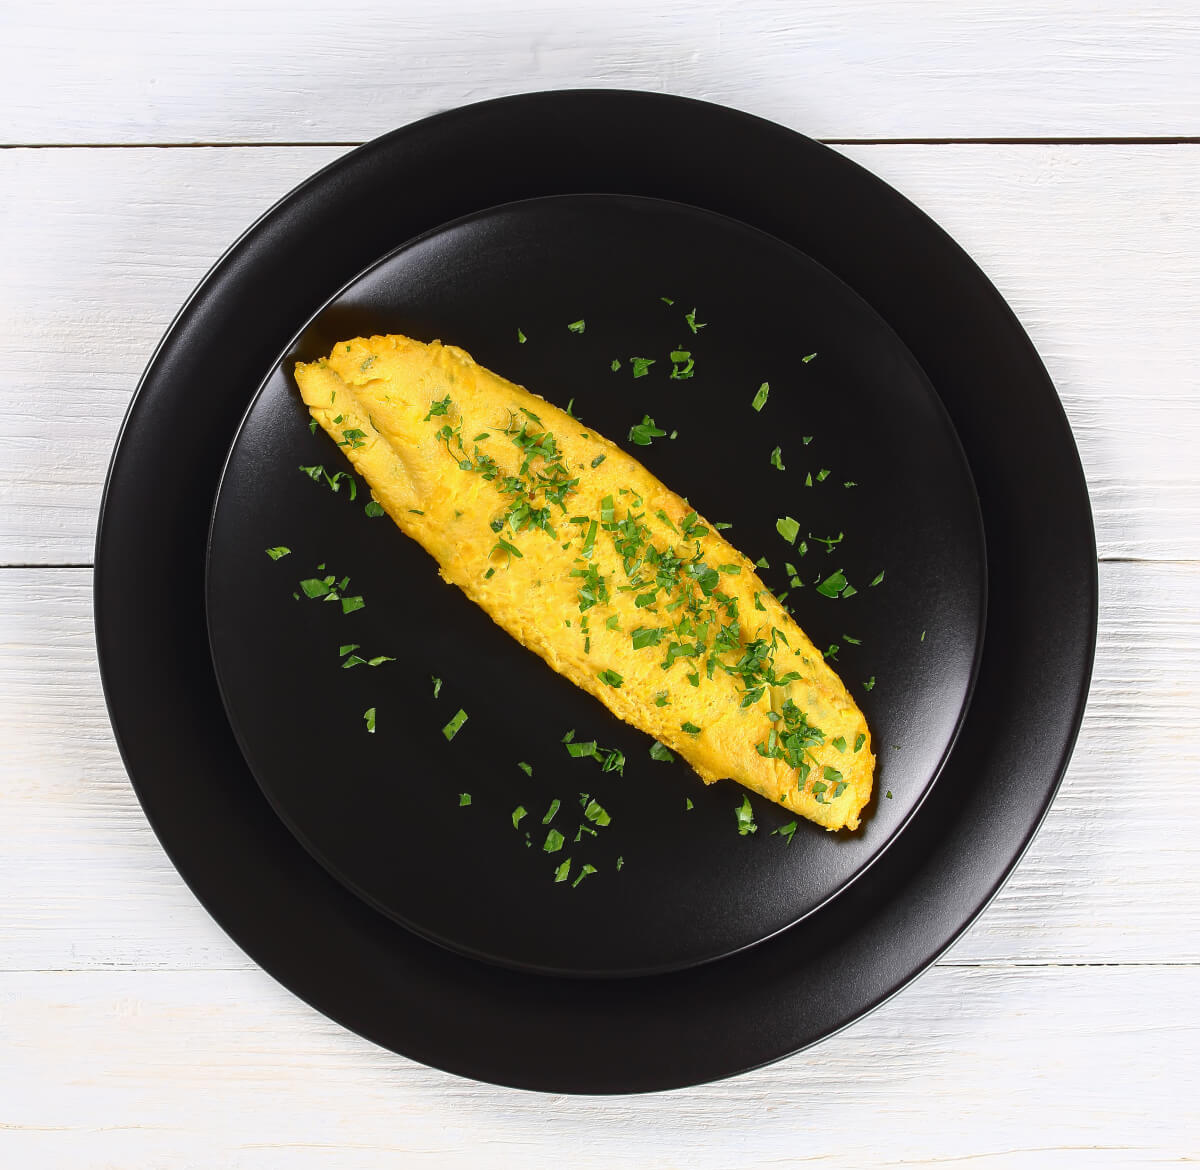 French omelette on a plate